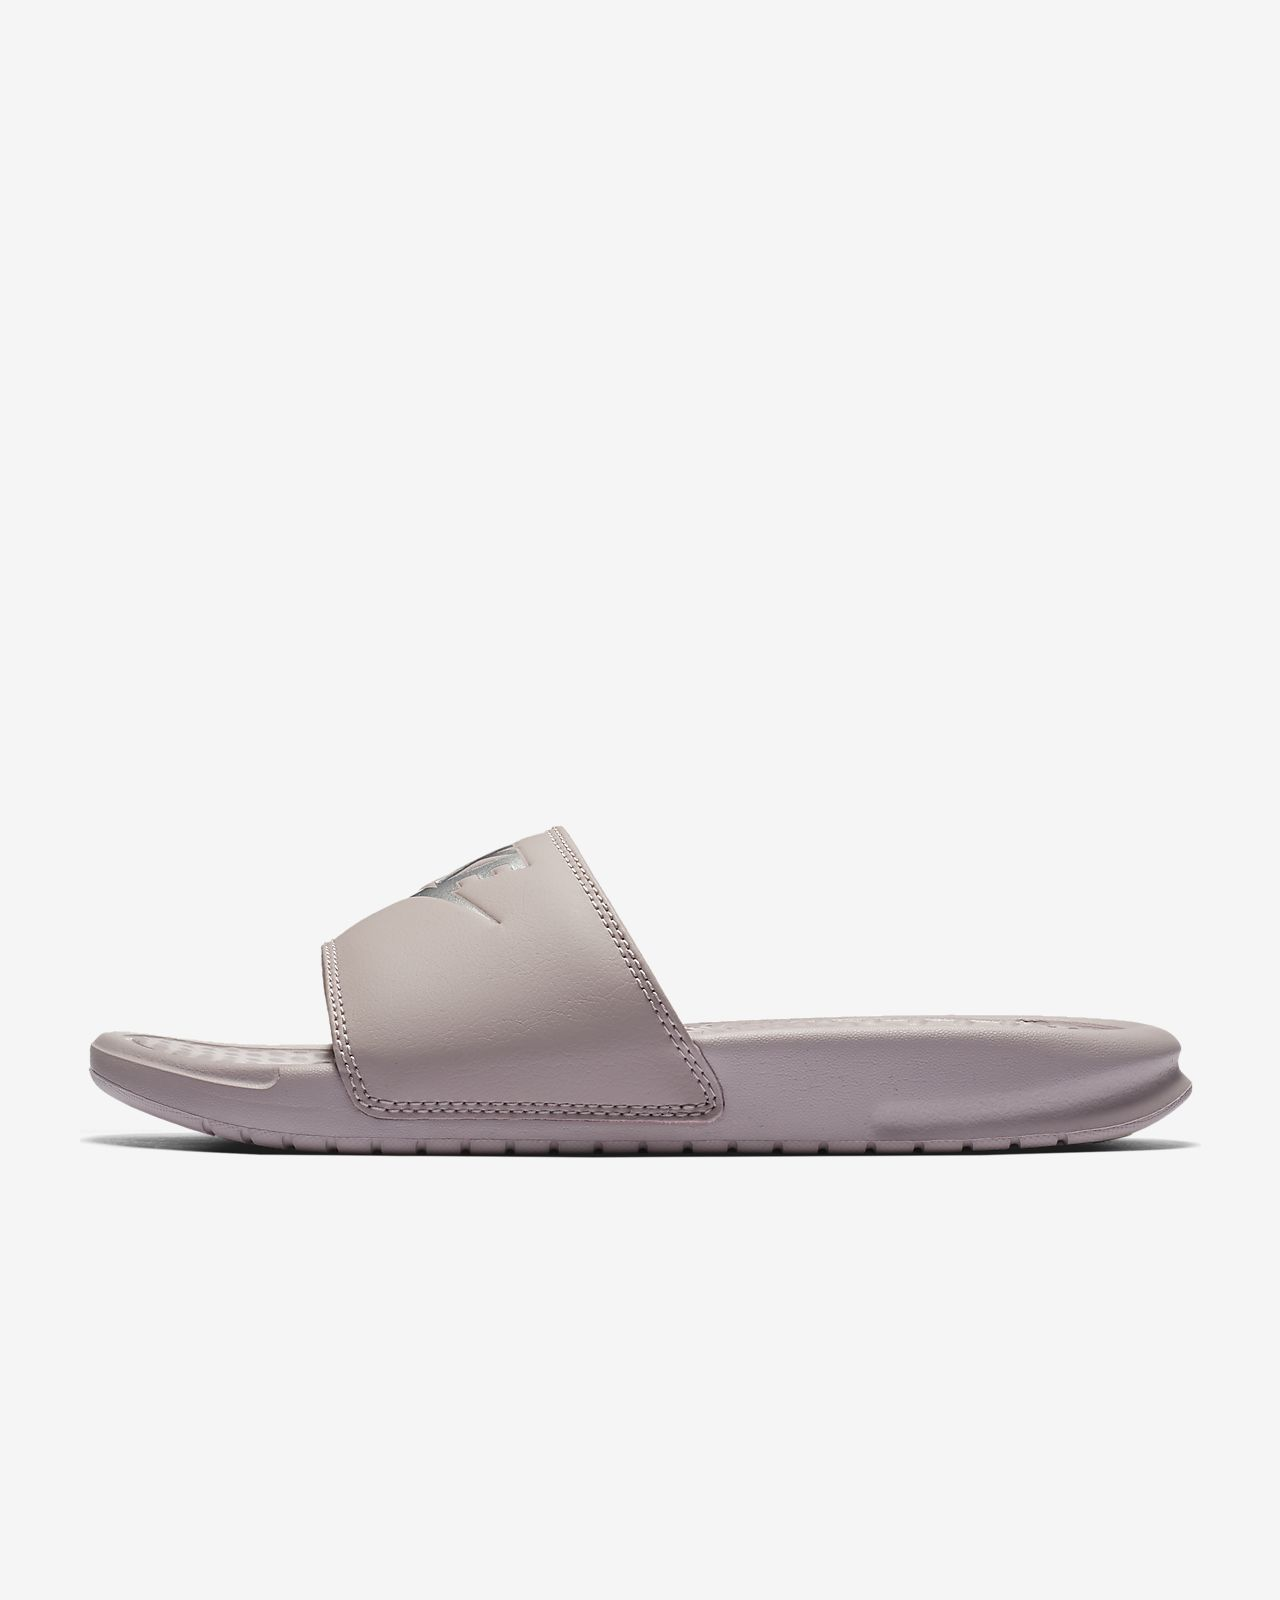 huge discount 9e9dc 3deed Low Resolution Nike Benassi Women s Slide Nike Benassi Women s Slide